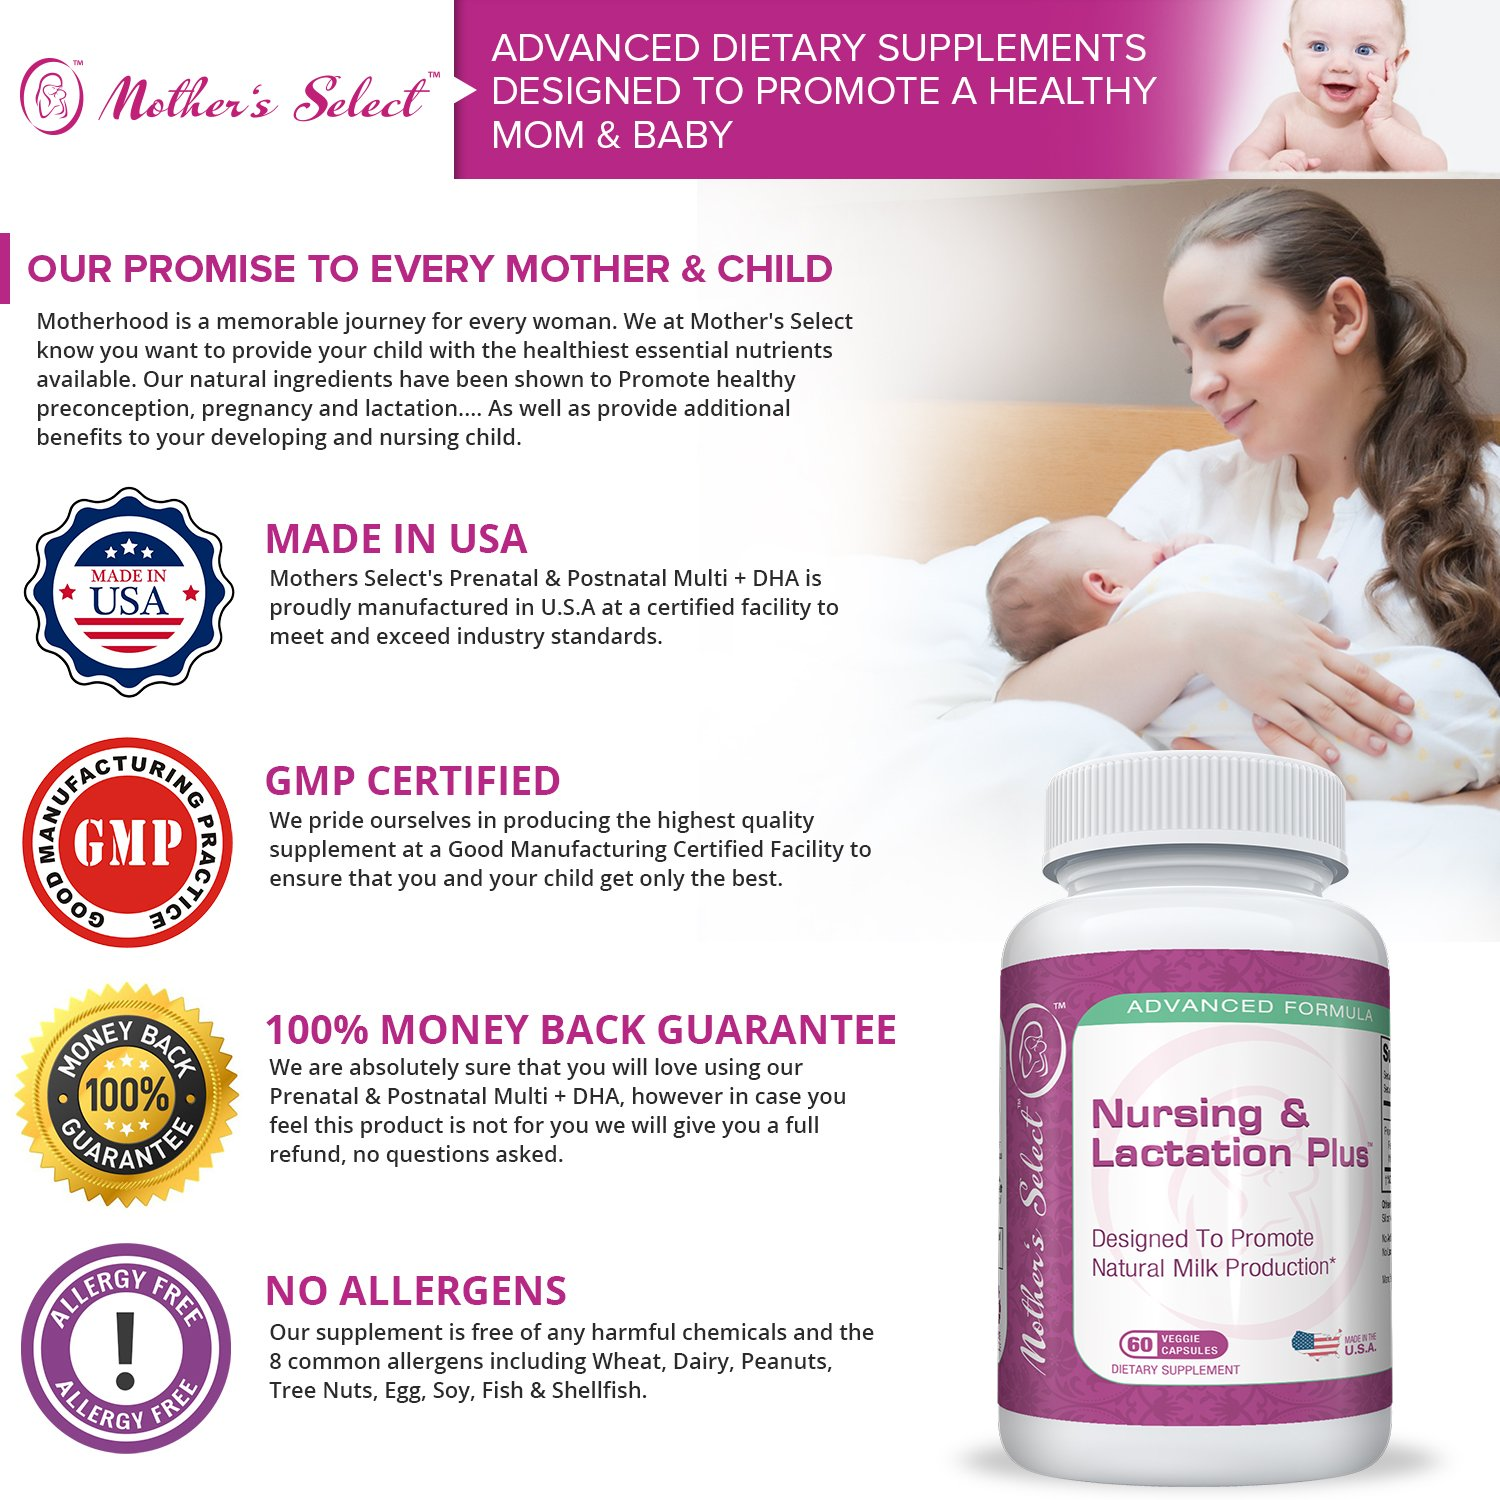 Breastfeeding Aid Support Supplement Mothers Select Nursing Herbs Of Gold 60 Tablets Lactation Plus Herbal Vitamin Formula With Fenugreek Extract